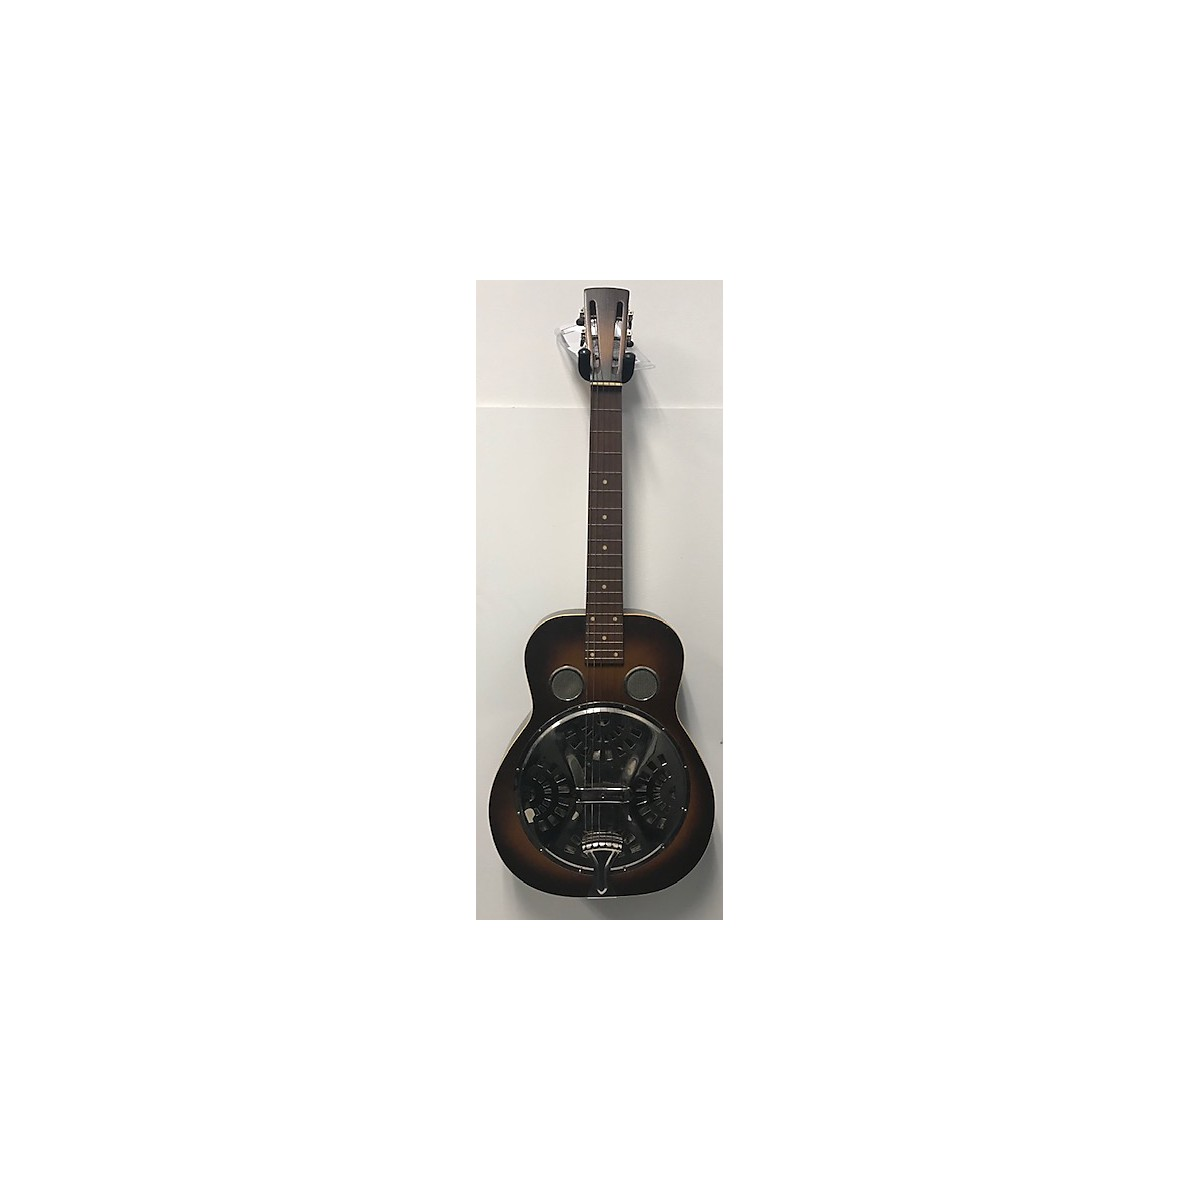 Regal 1960s Square Neck Resonator Acoustic Guitar